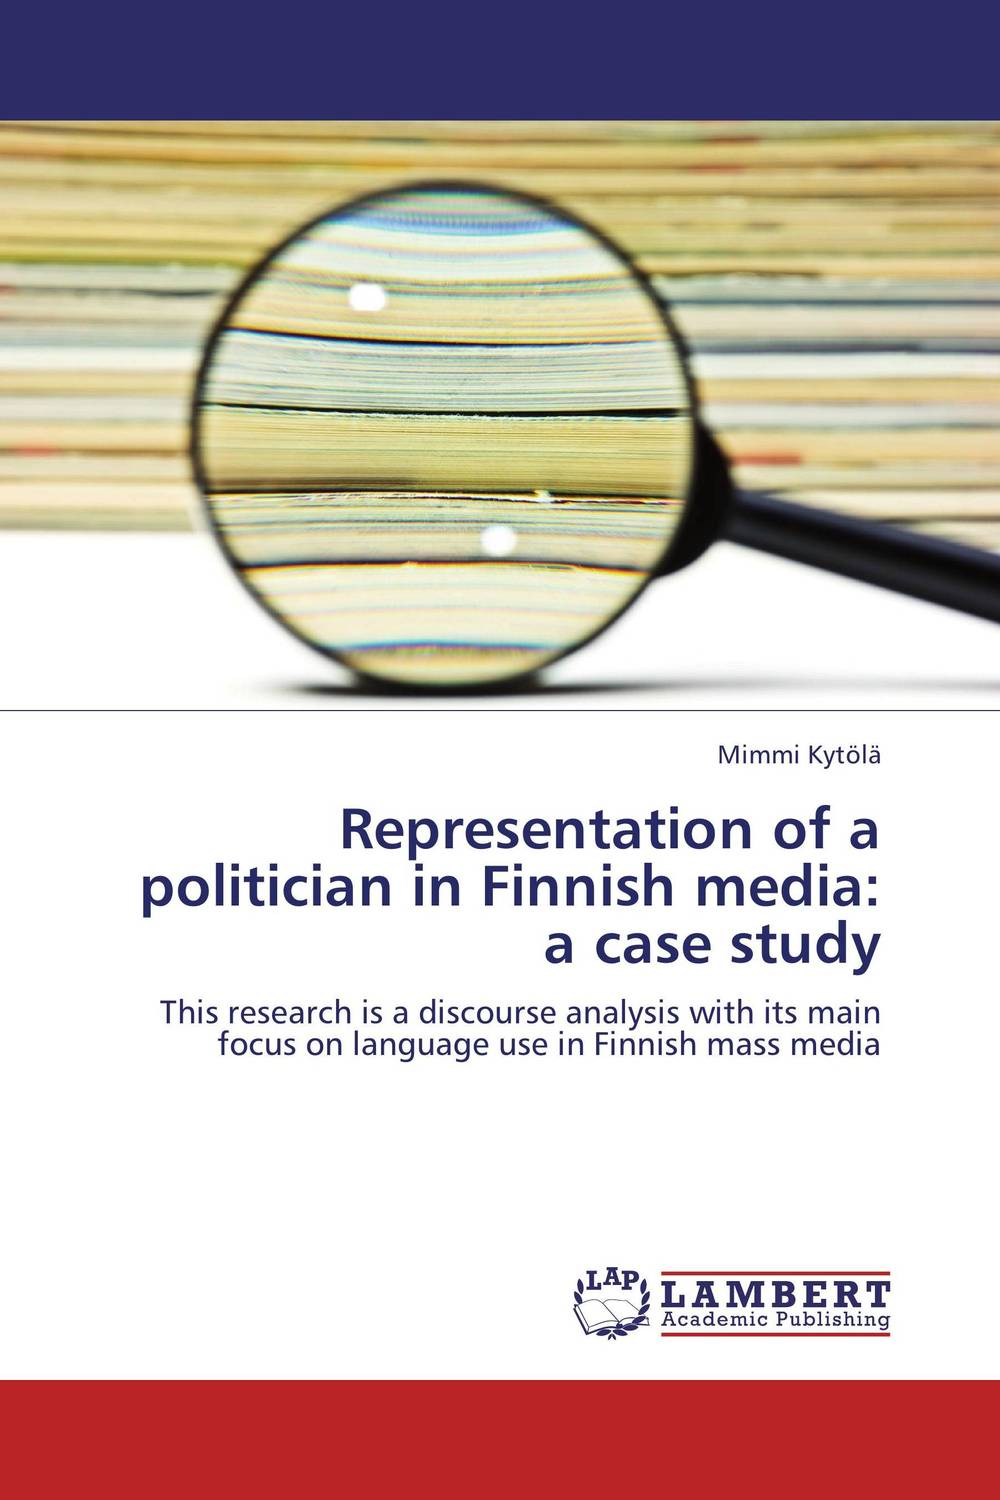 Representation of a politician in Finnish media: a case study shakespeare after mass media [9780312294540]